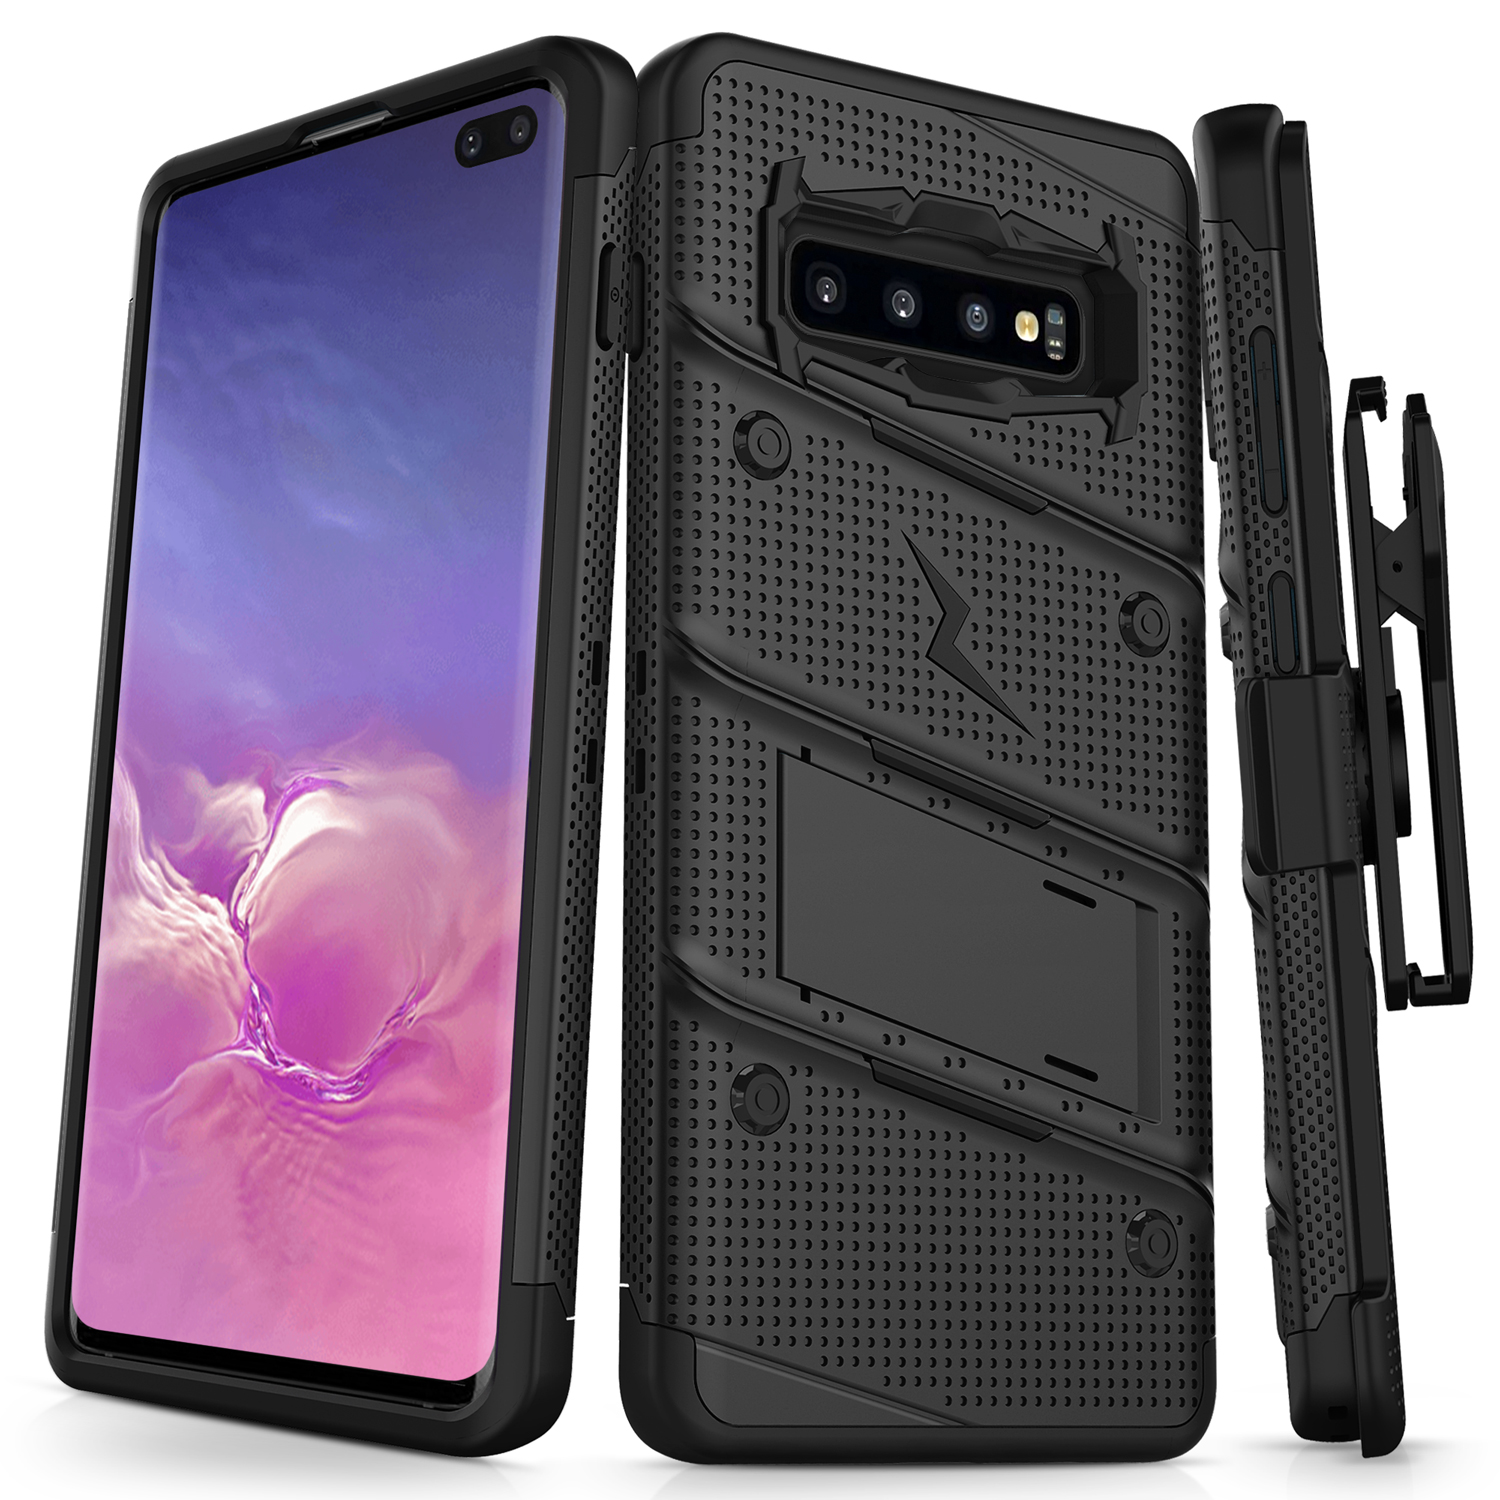 Samsung Galaxy S10 Plus// S10 PC-Red Case W Built-in Kickstand Rotatable Combo Holster Phone Belt Clip Shock Absorption Heavy Duty Protective case